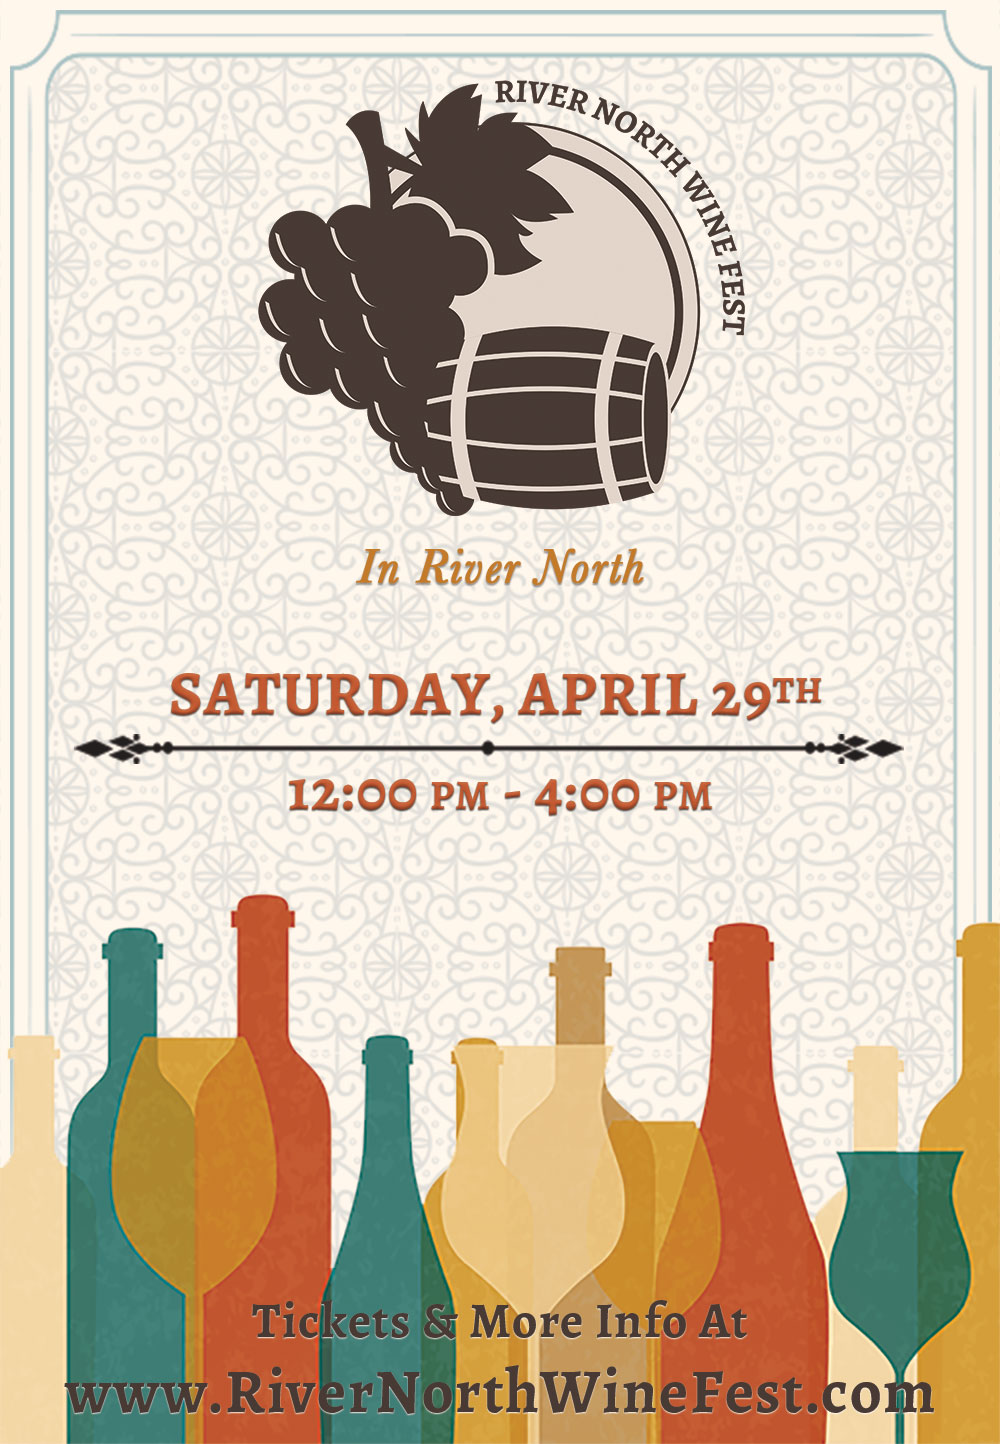 River North Chicago Wine Fest - Tickets include wine tastings and a cheese plate! We will have over 35 different wines from all over the world available for sampling!